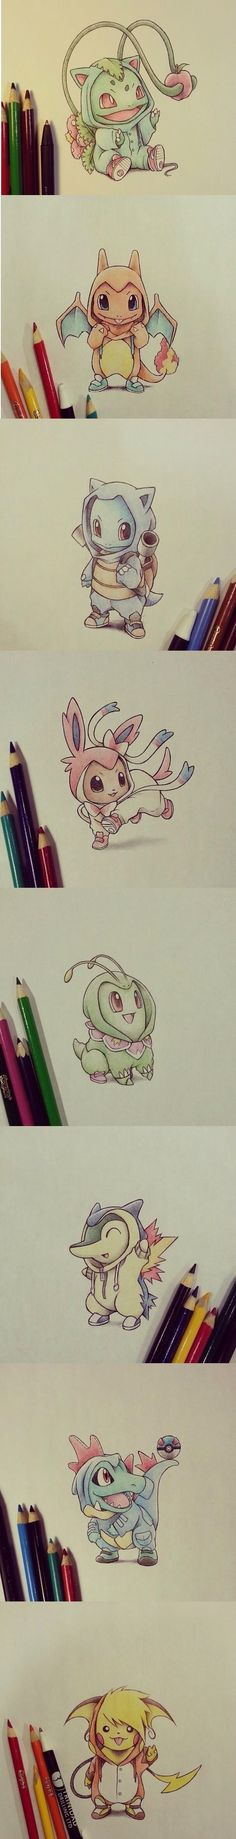 Cute pokemon // funny pictures - funny photos - funny images - funny pics - funny quotes - #lol #humor #funnypictures